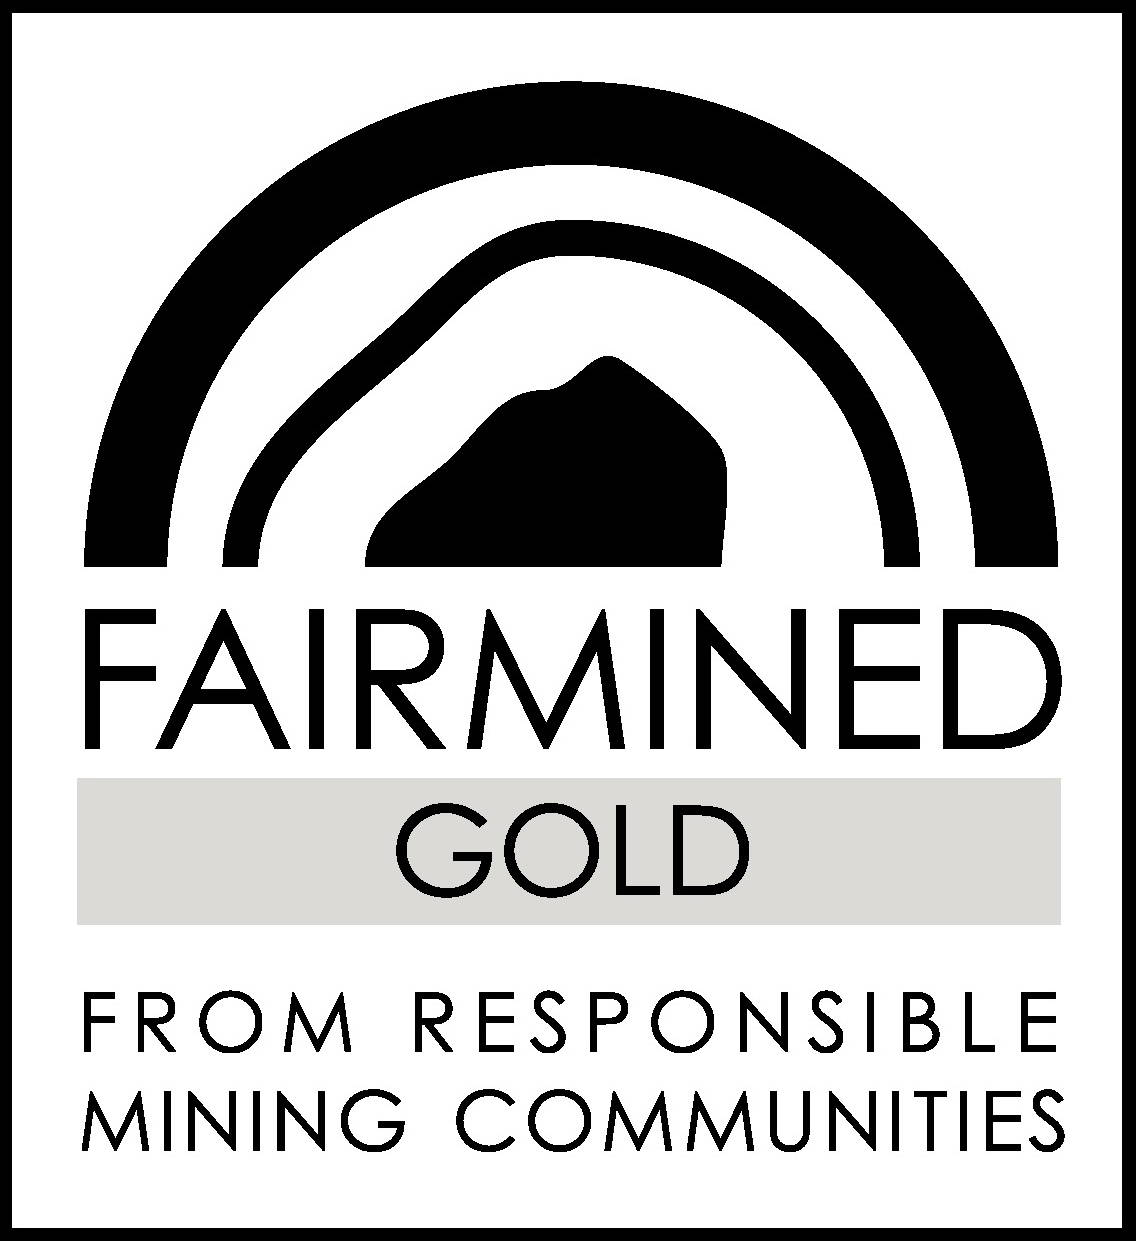 Fairmined Gold from responsible mining communities